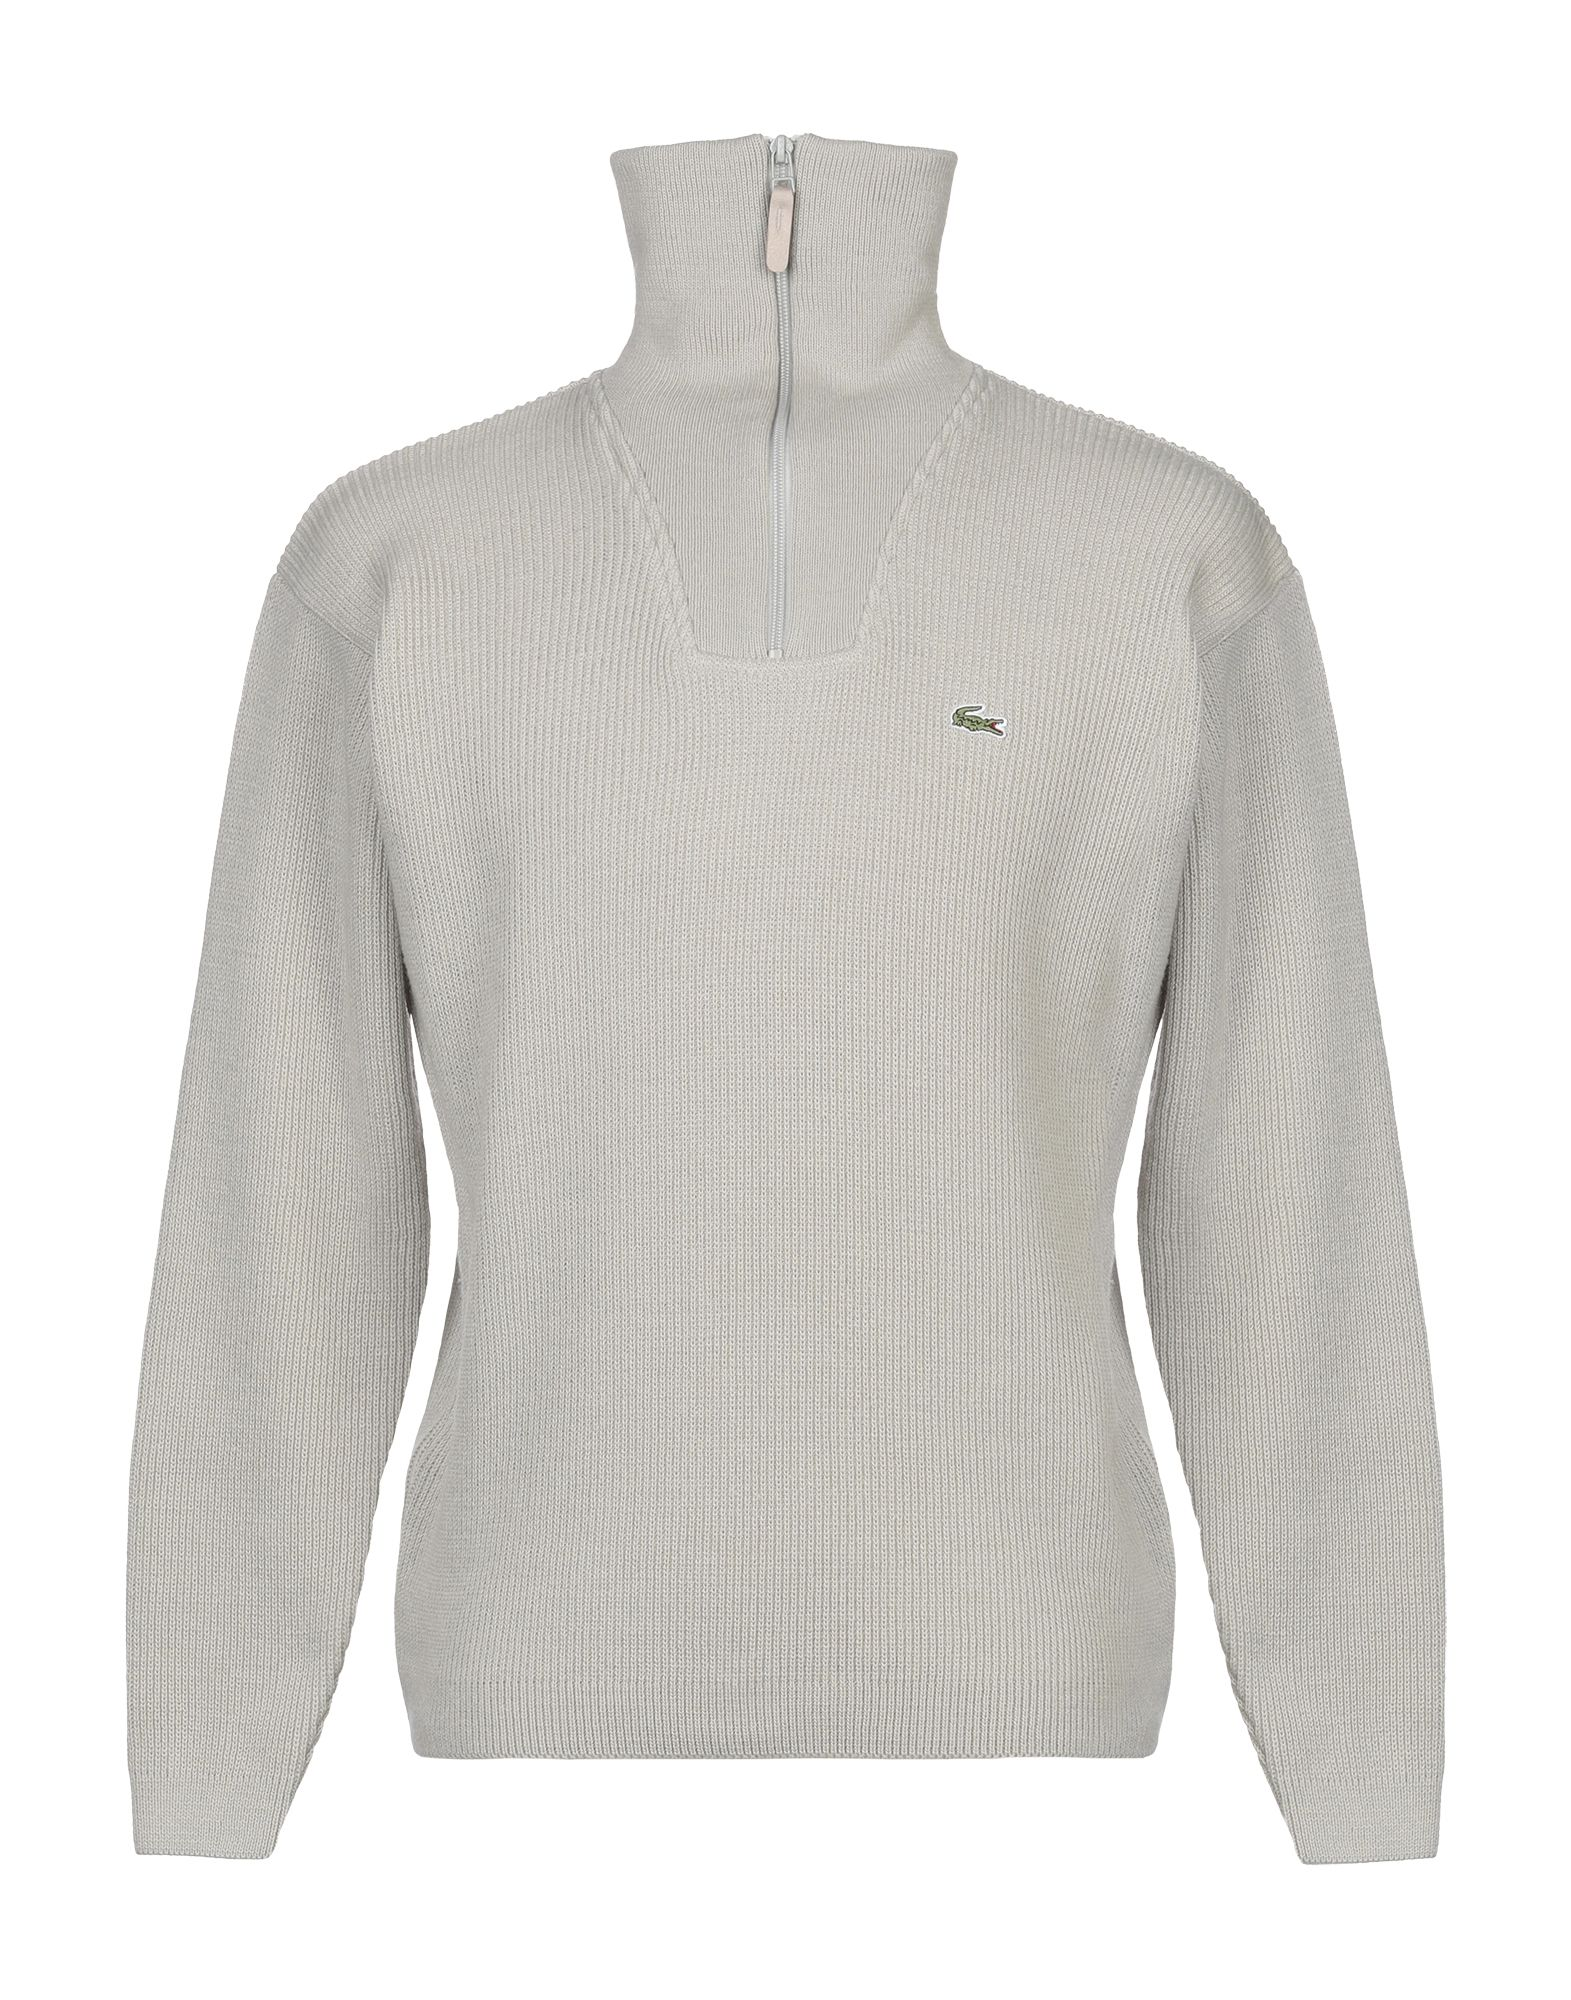 LACOSTE Водолазки трикотаж lacoste 65 live af7559